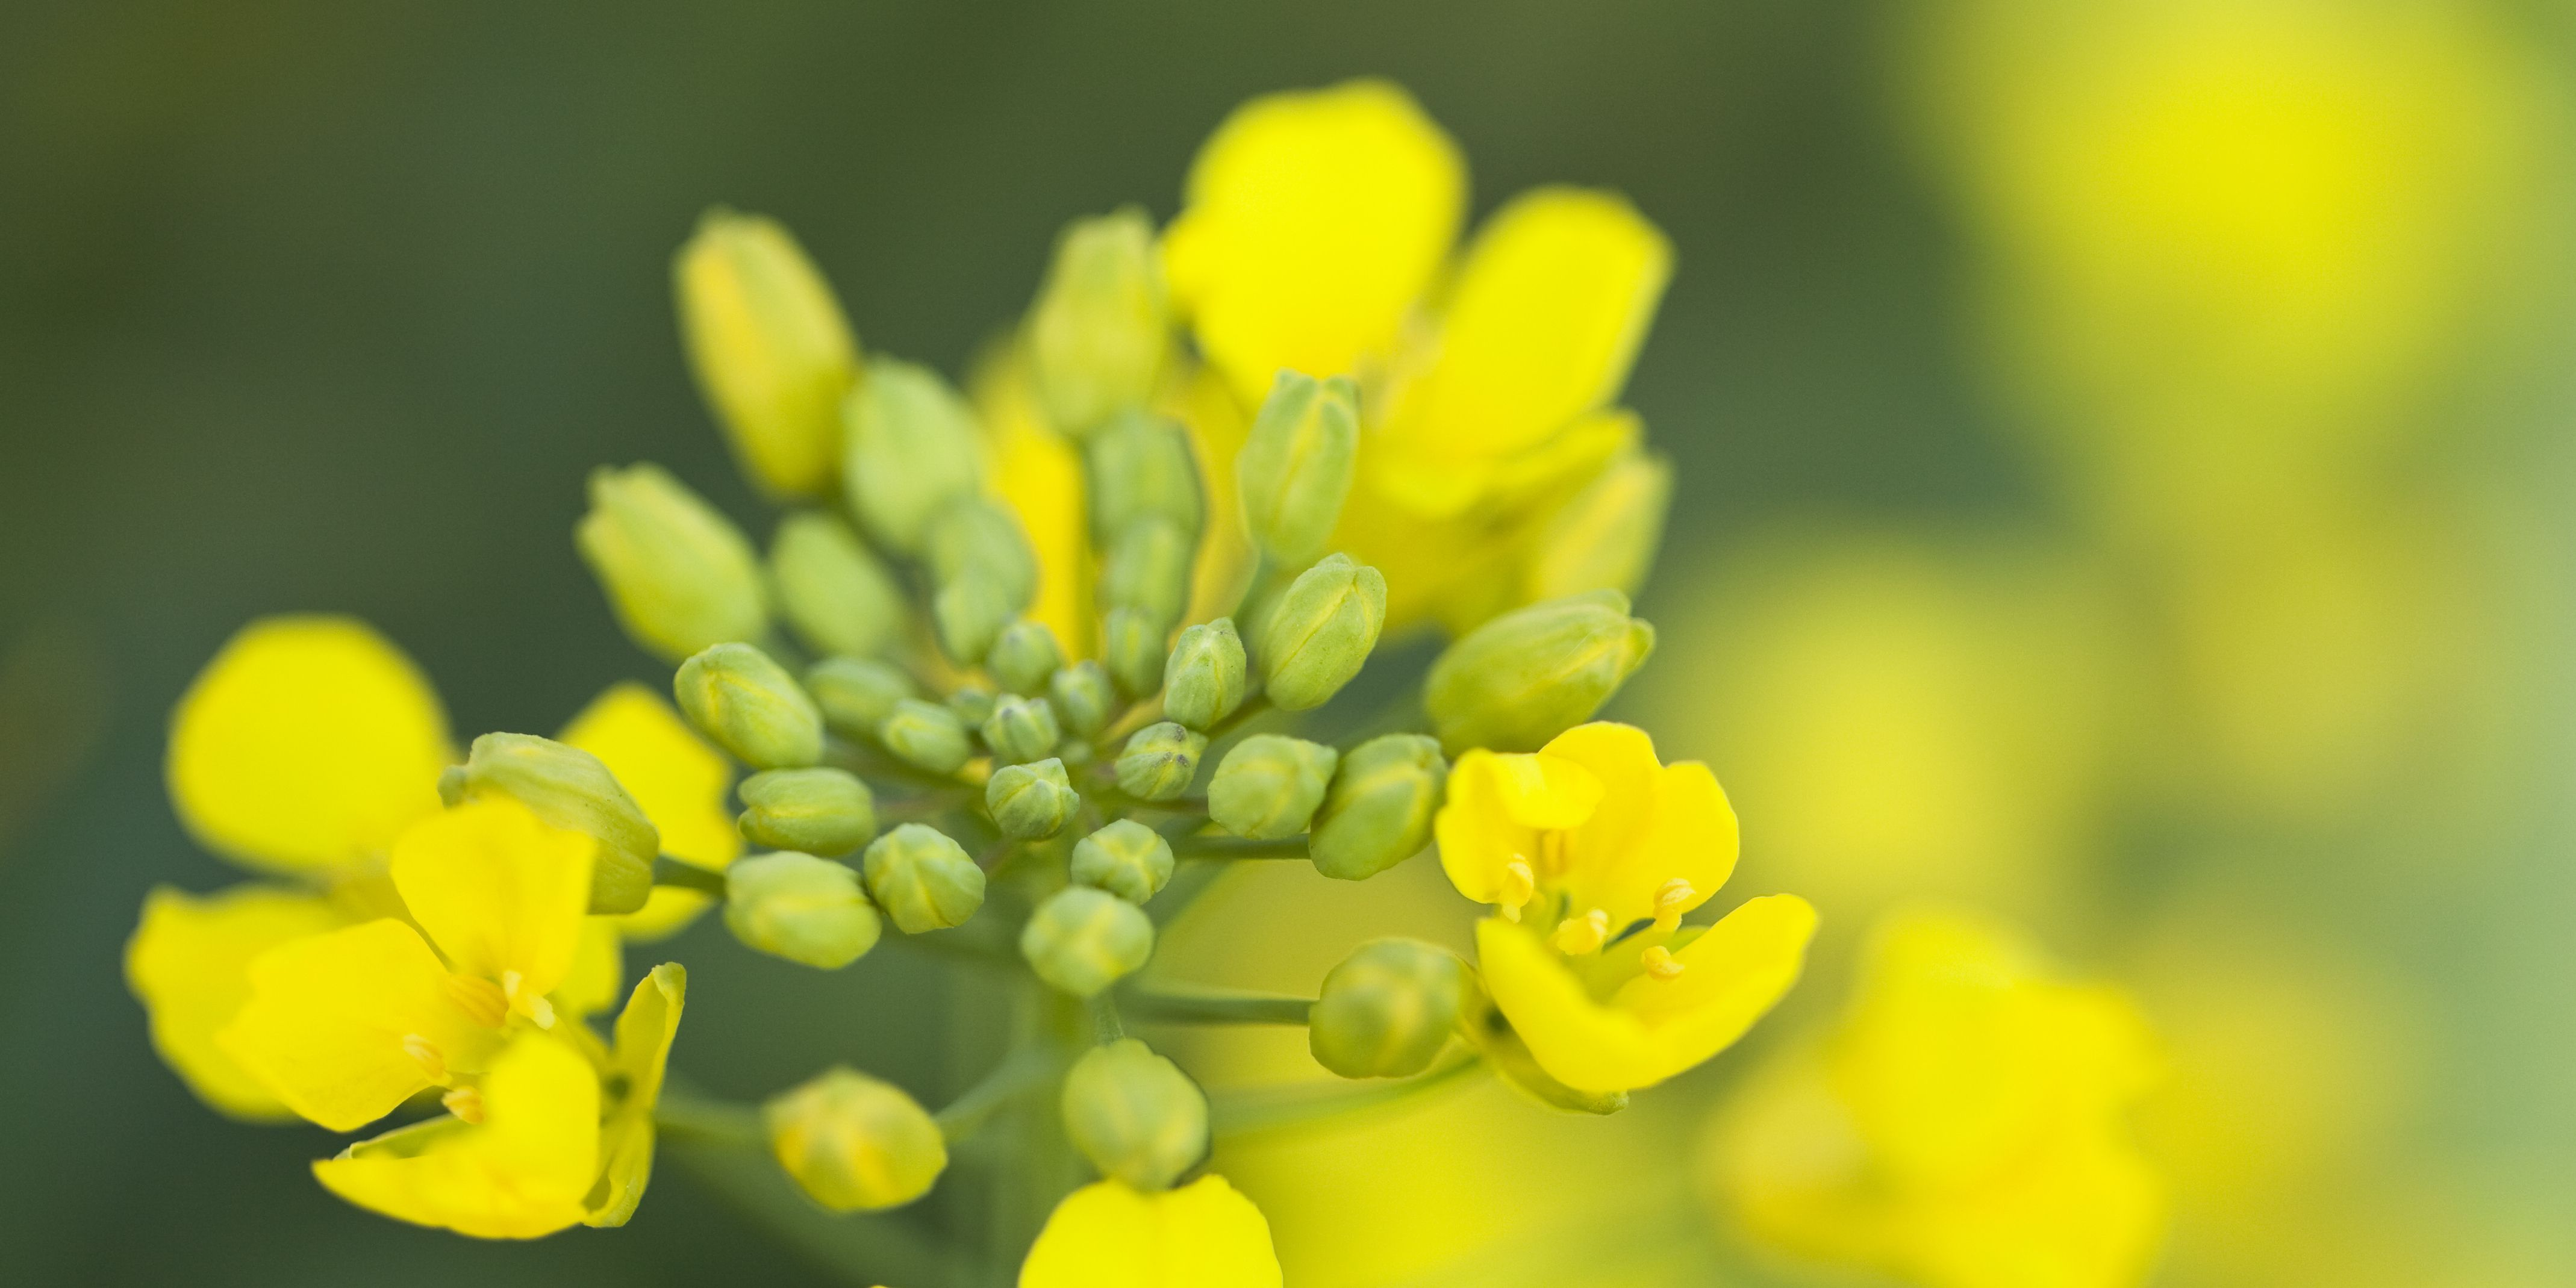 DuPont™ Acapela® fungicide for the control of sclerotinia in canola.